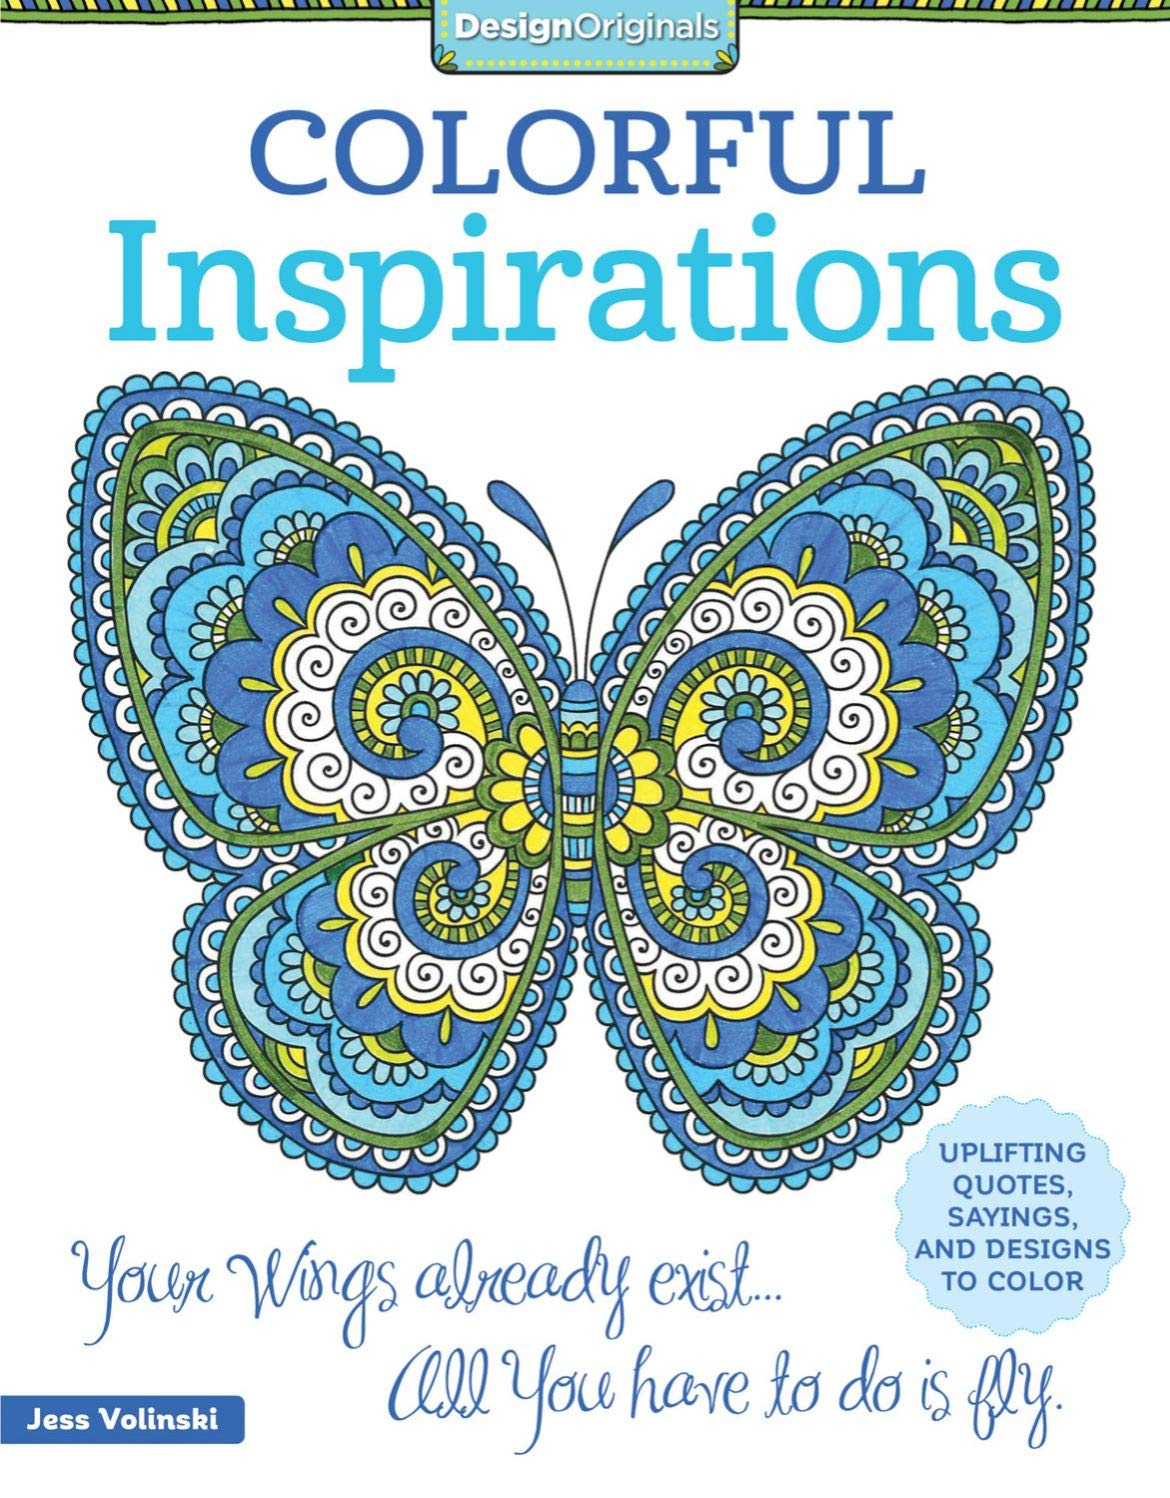 colorful inspirations coloring book uplifting quotes sayings